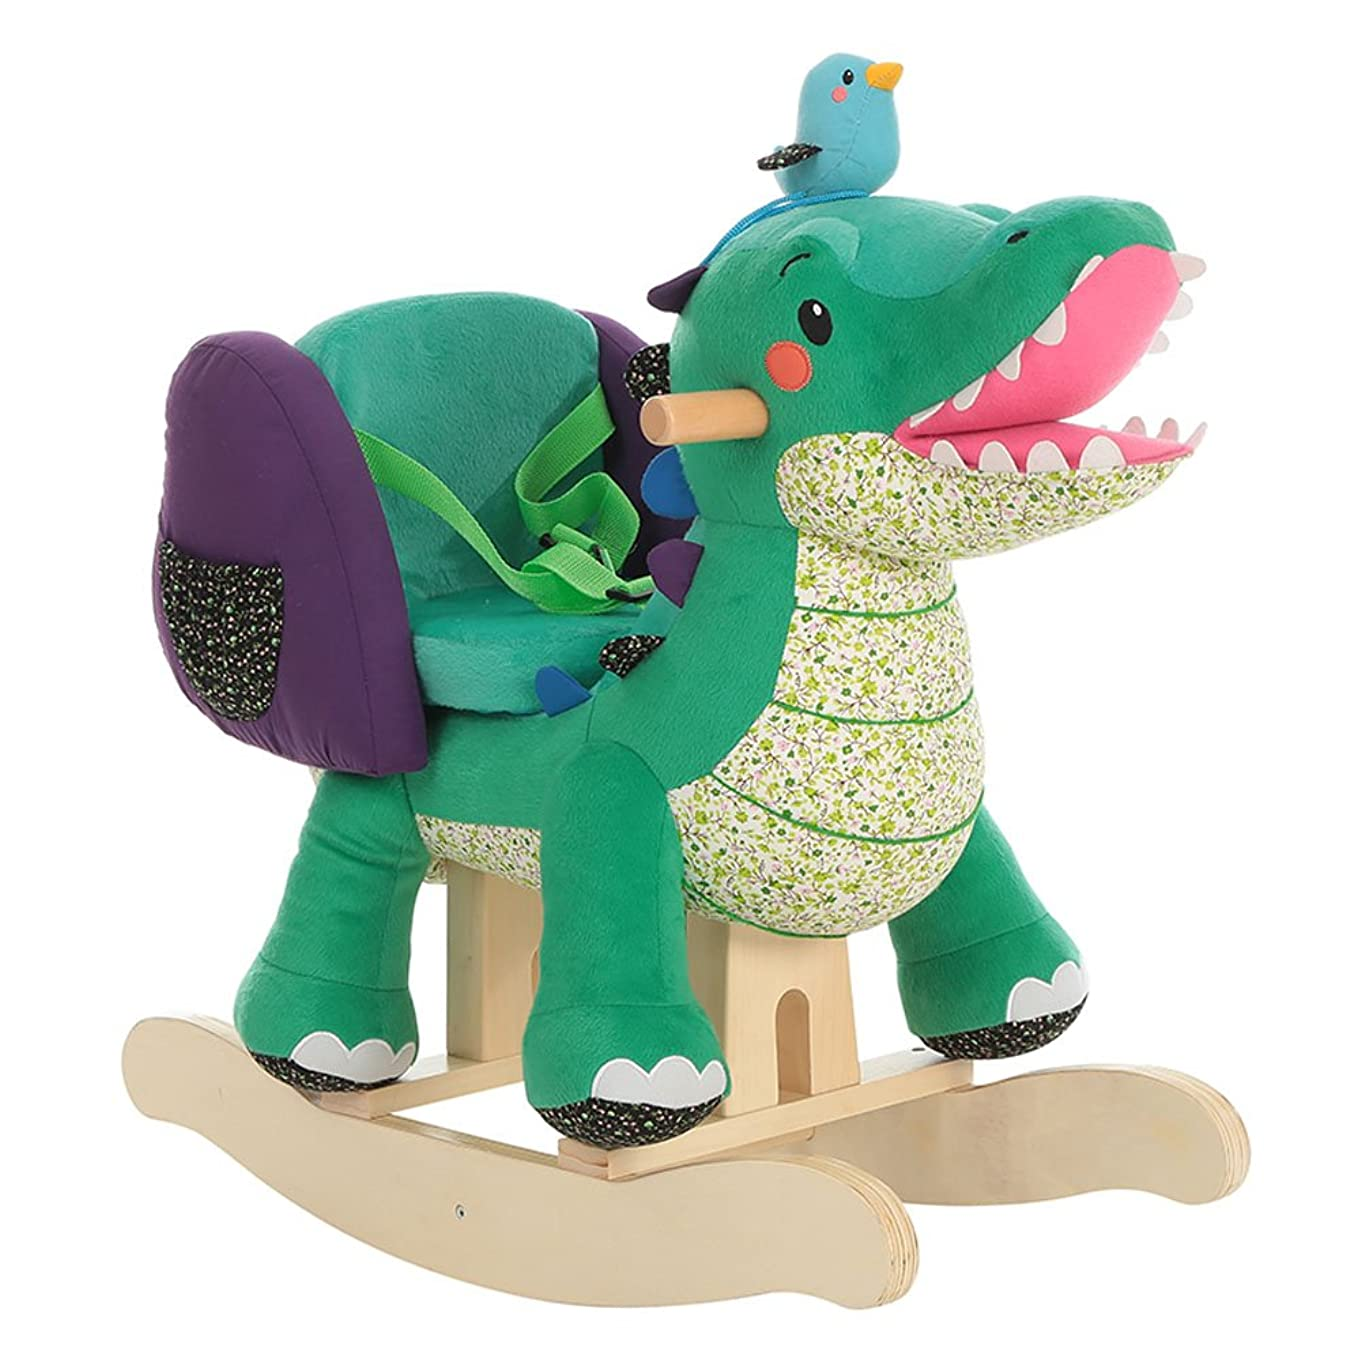 ?? Labebe Child Rocking Horse Toy, Stuffed Animal Rocker, Green Crocodile Plush Rocker Toy for Kid 1-3 Years, Wooden Rocking Horse Chair/Child Rocking Toy/Outdoor Rocking Horse/Rocker/Animal Ride on